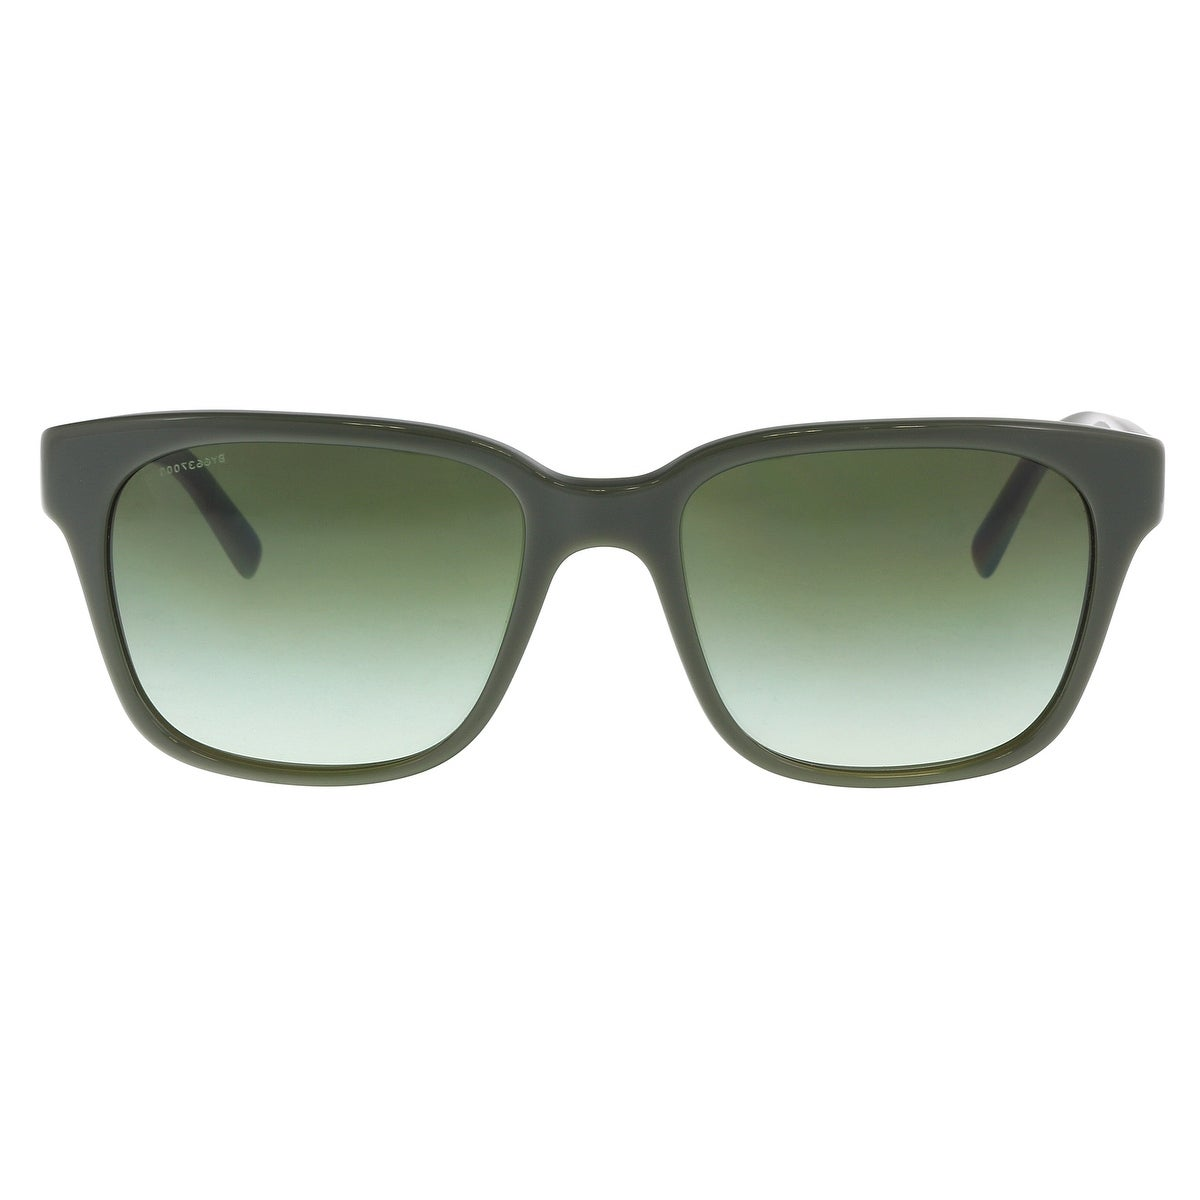 9afb9232d646 Shop Burberry BE4140 33738E Moss Green Rectangle Sunglasses - 55-18-140 -  Free Shipping Today - Overstock - 21471081